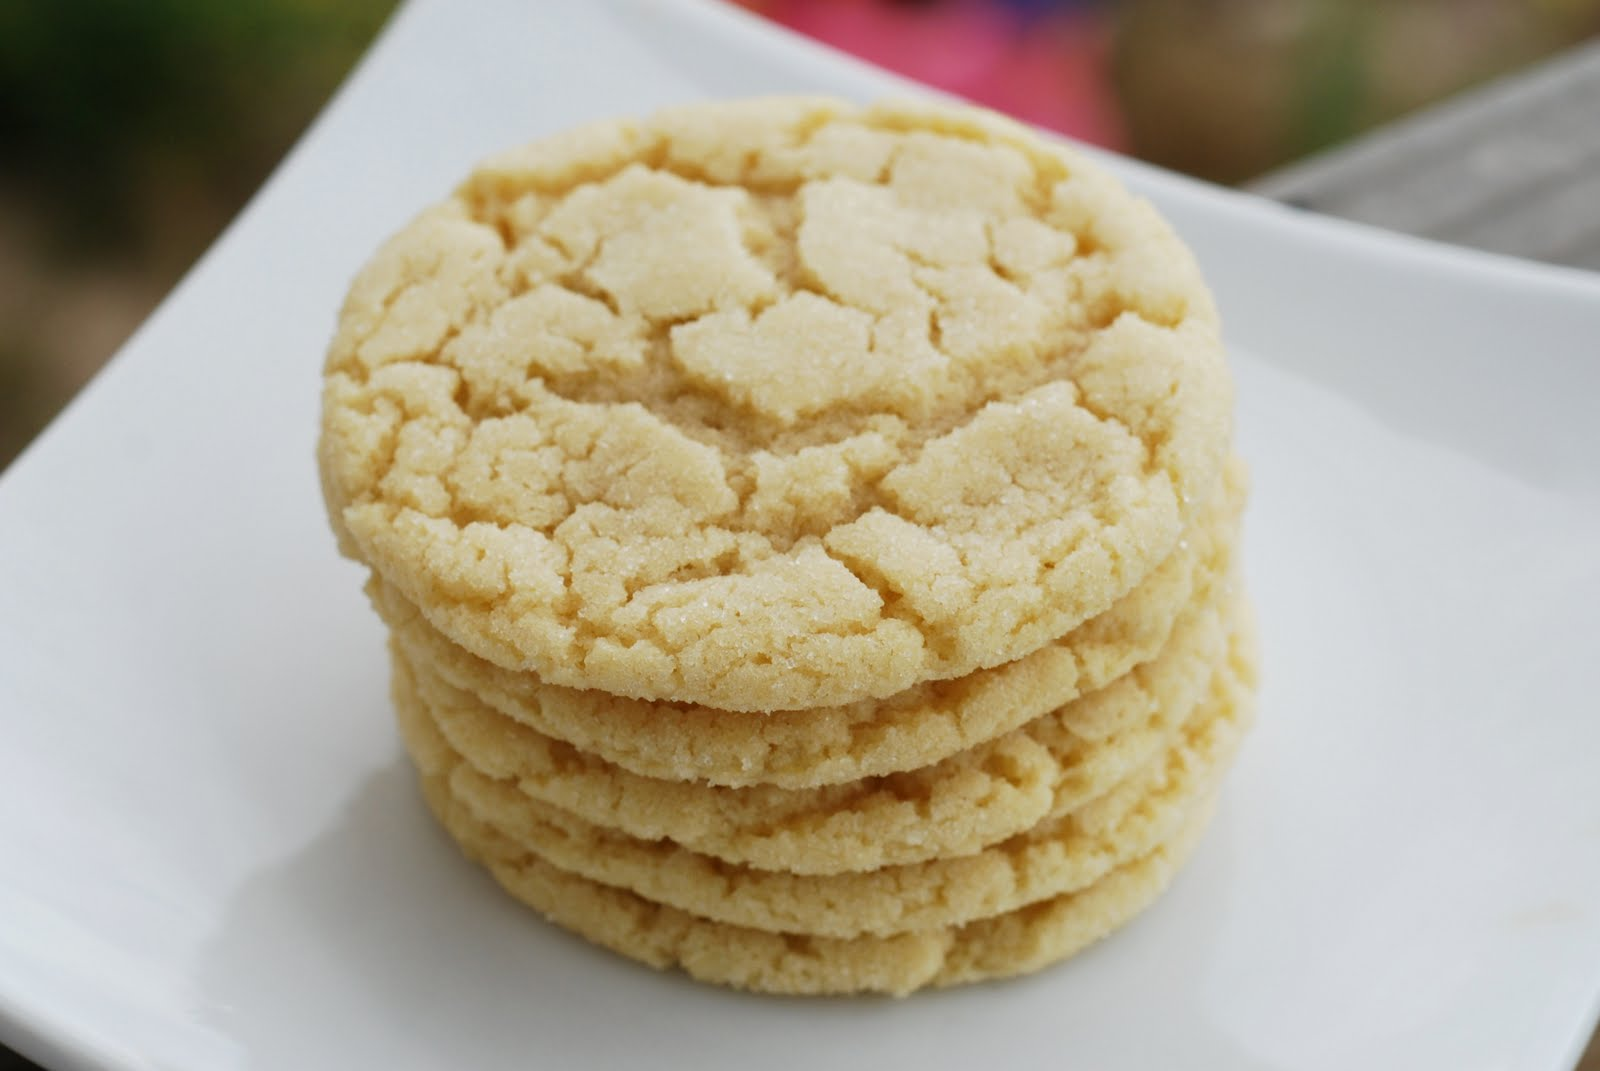 Cake Mix Cookie Recipe With Soda